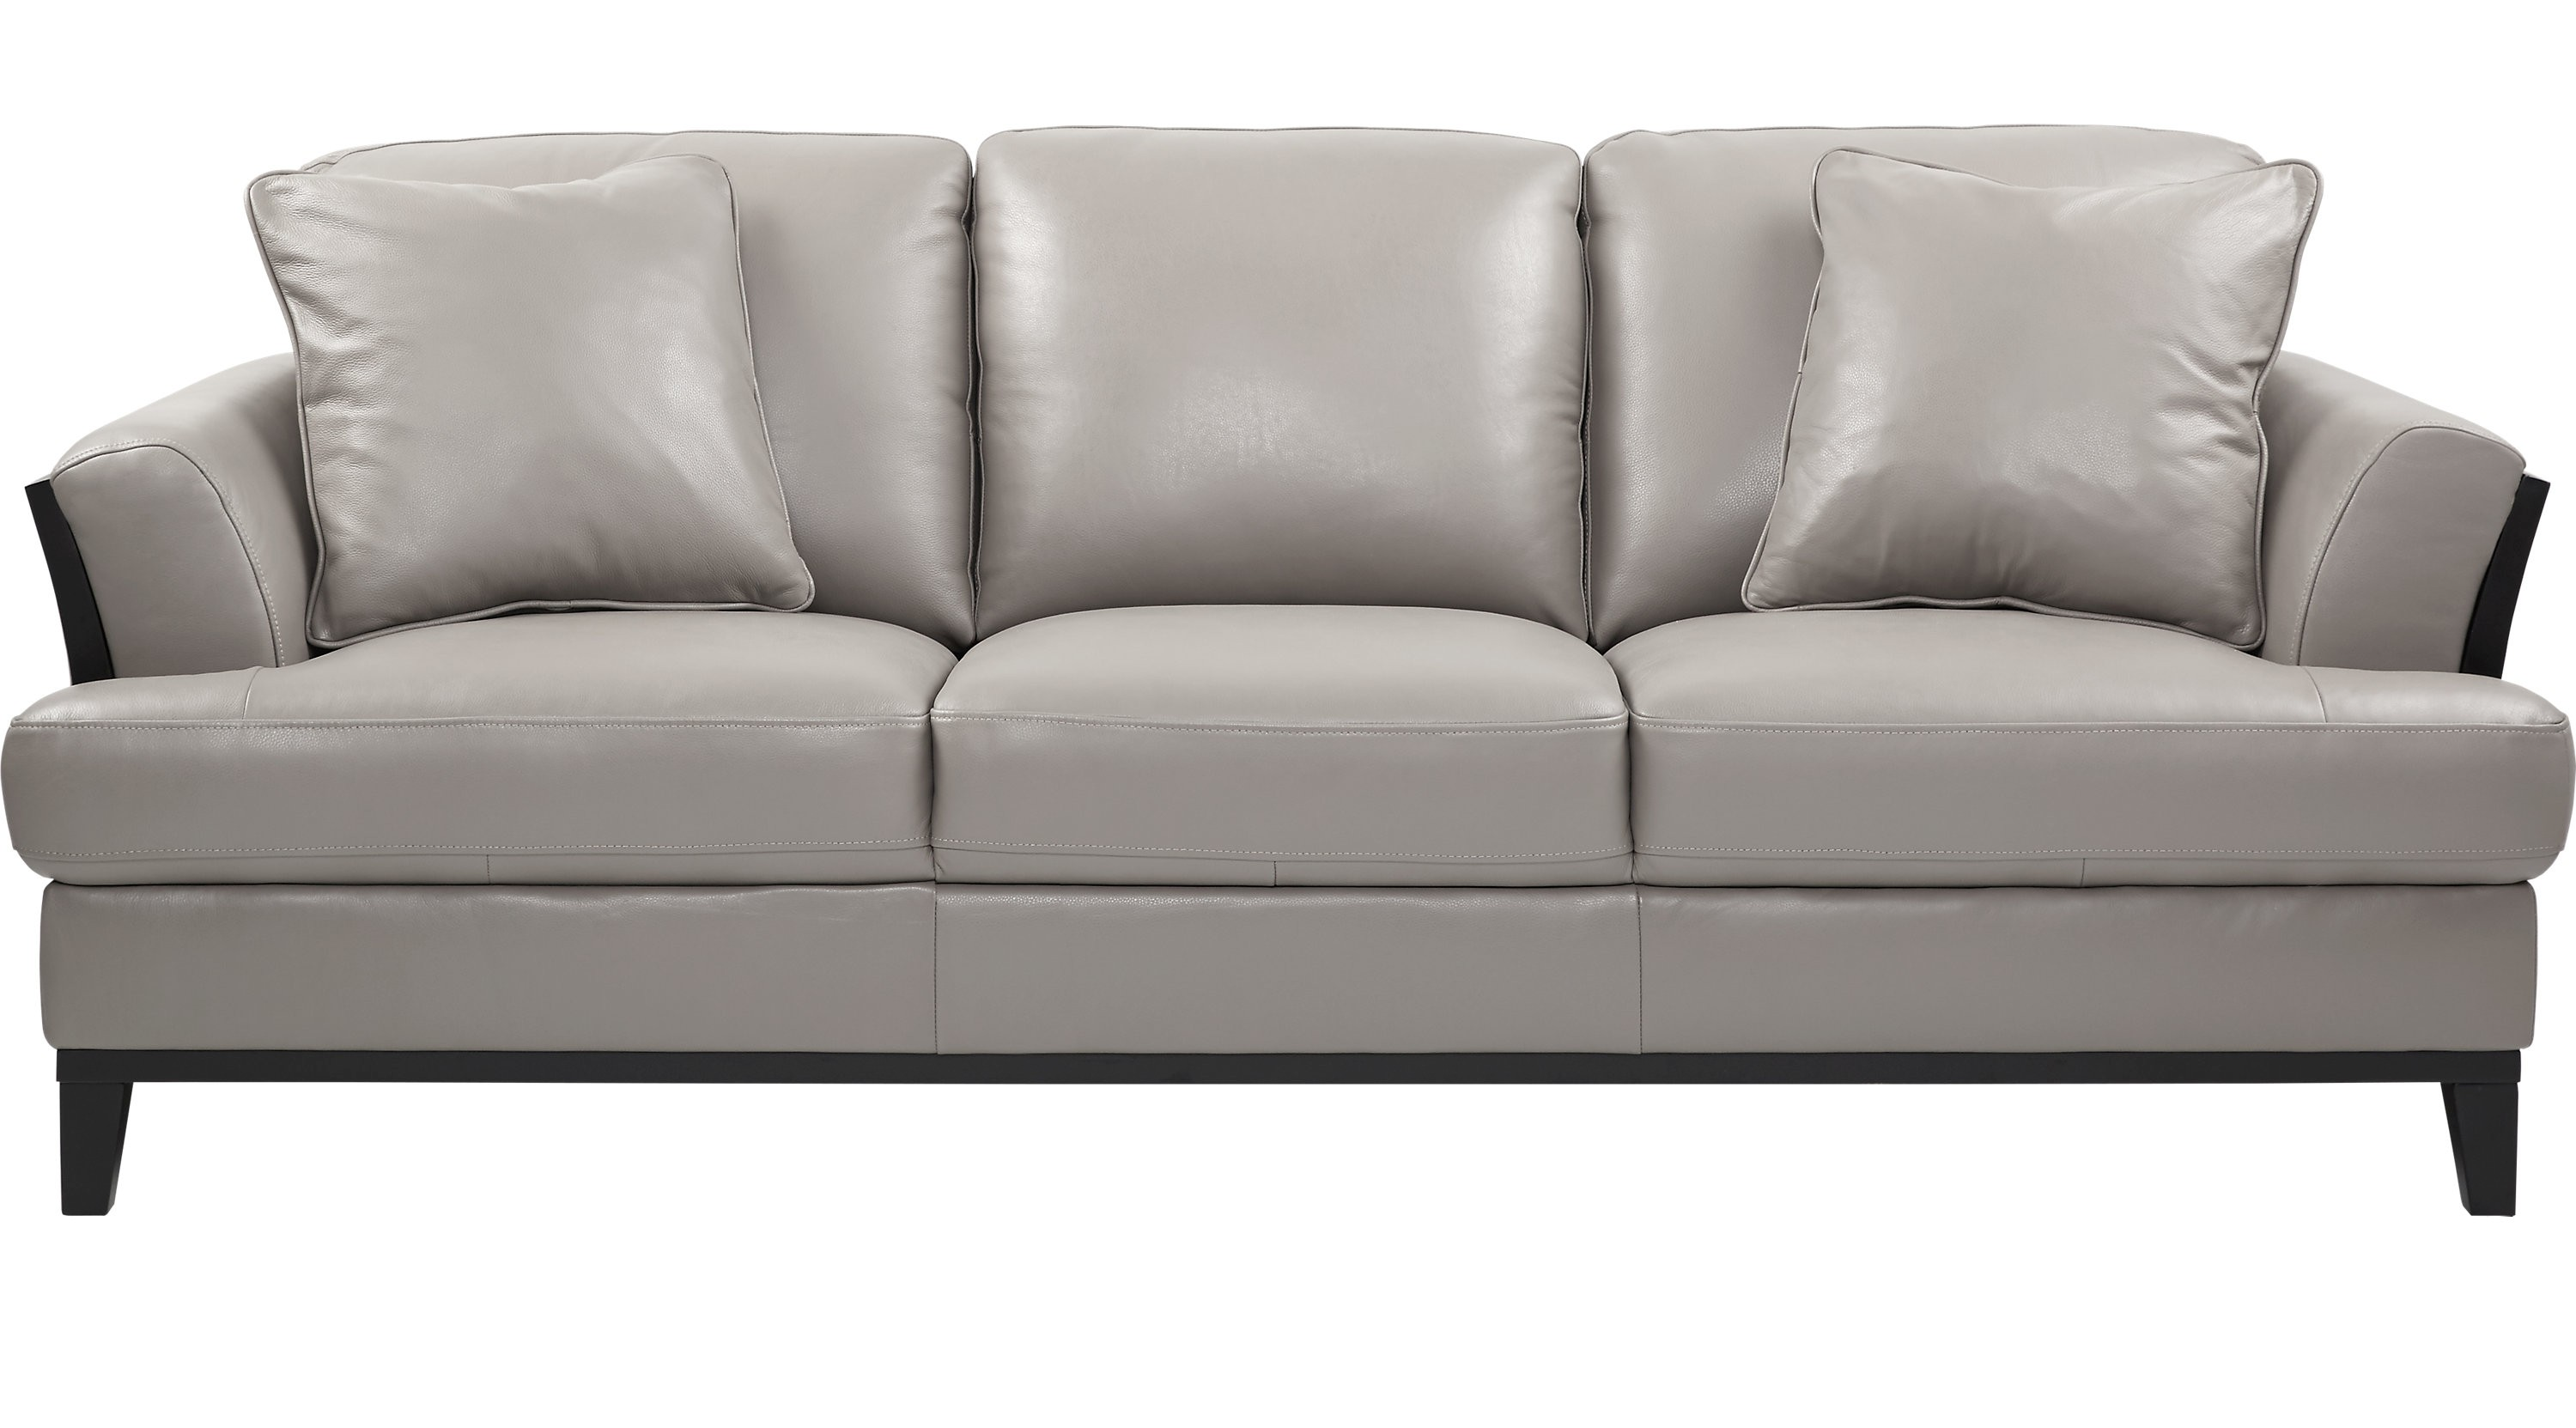 Gray Leather sofa Modern Augustina Gray Leather sofa Classic Transitional Inspiration